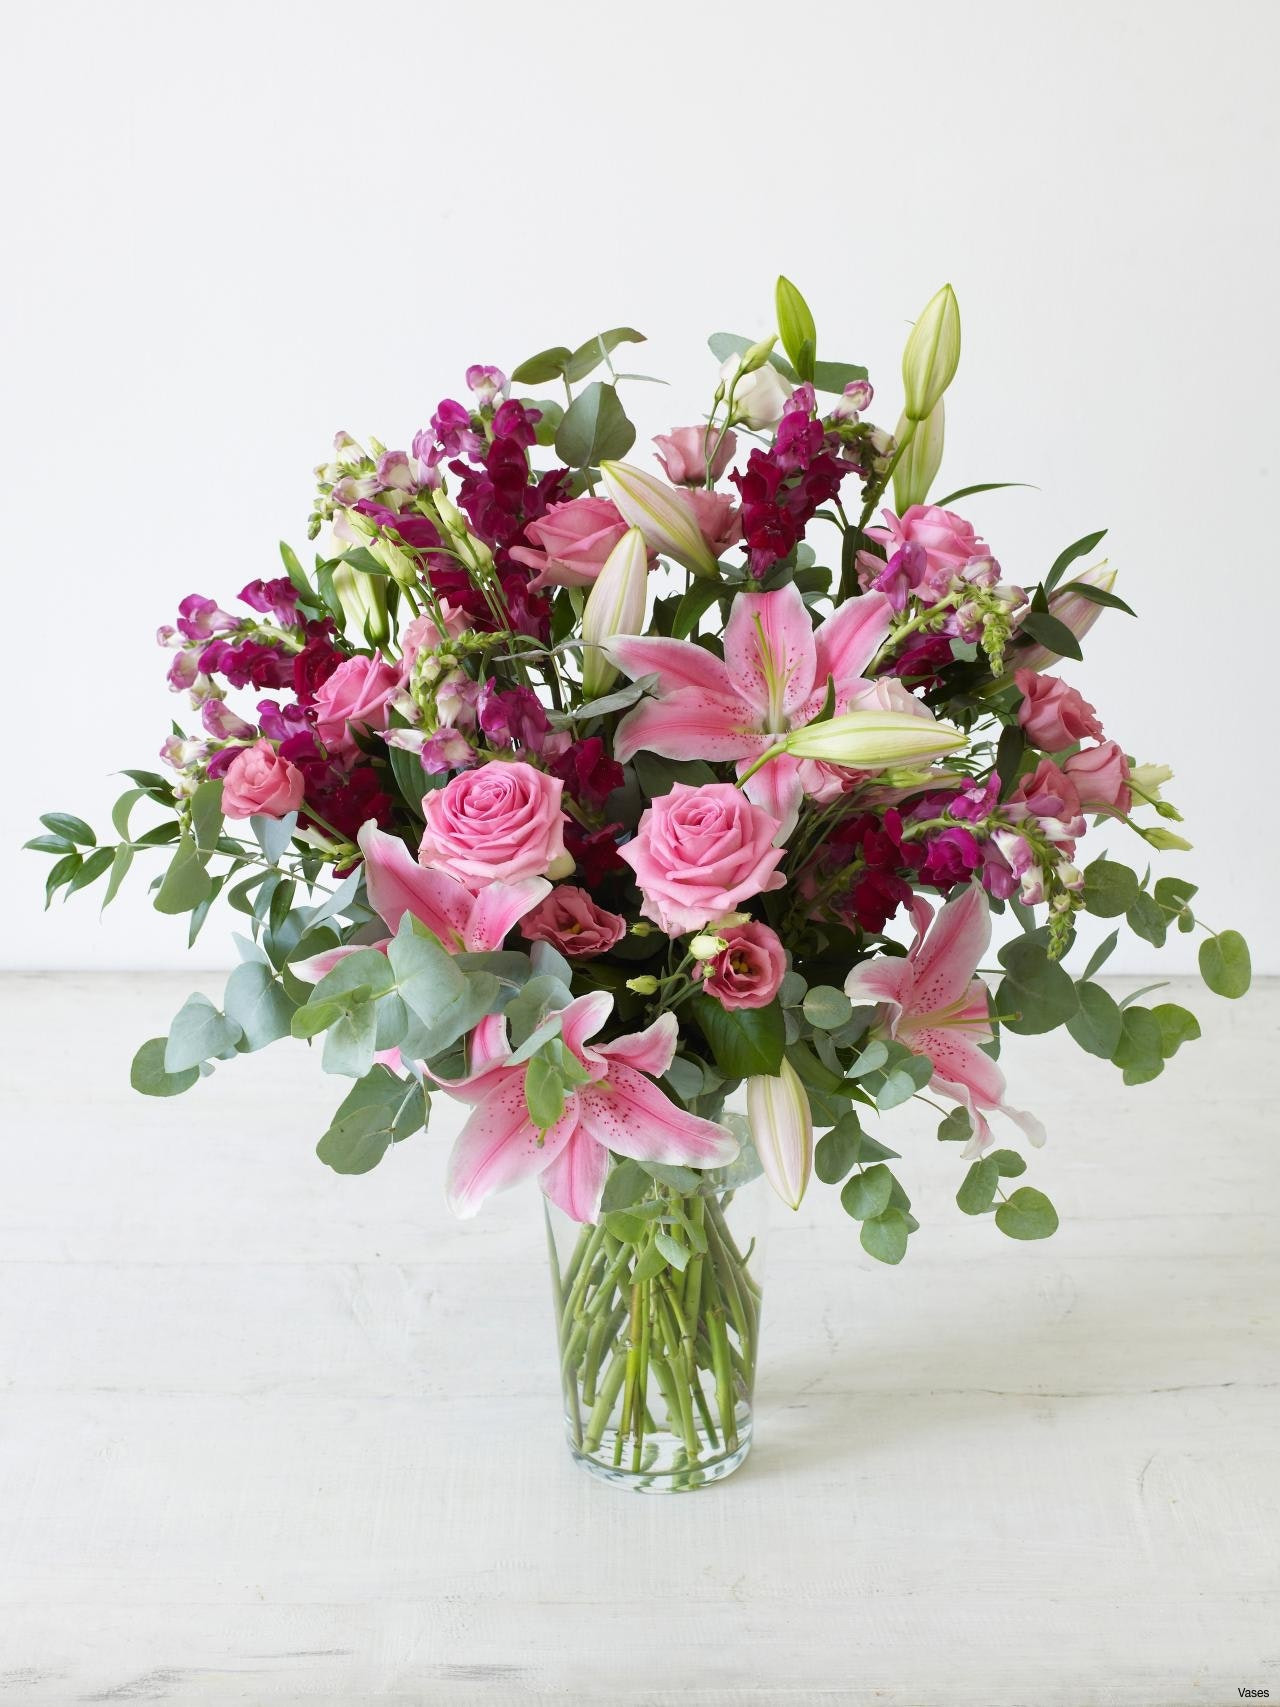 Flower Delivery No Vase Of 27 Beautiful Flower Vase Definition Flower Decoration Ideas In Flower Vase Definition Awesome 36 Beautiful Picture Arrangements